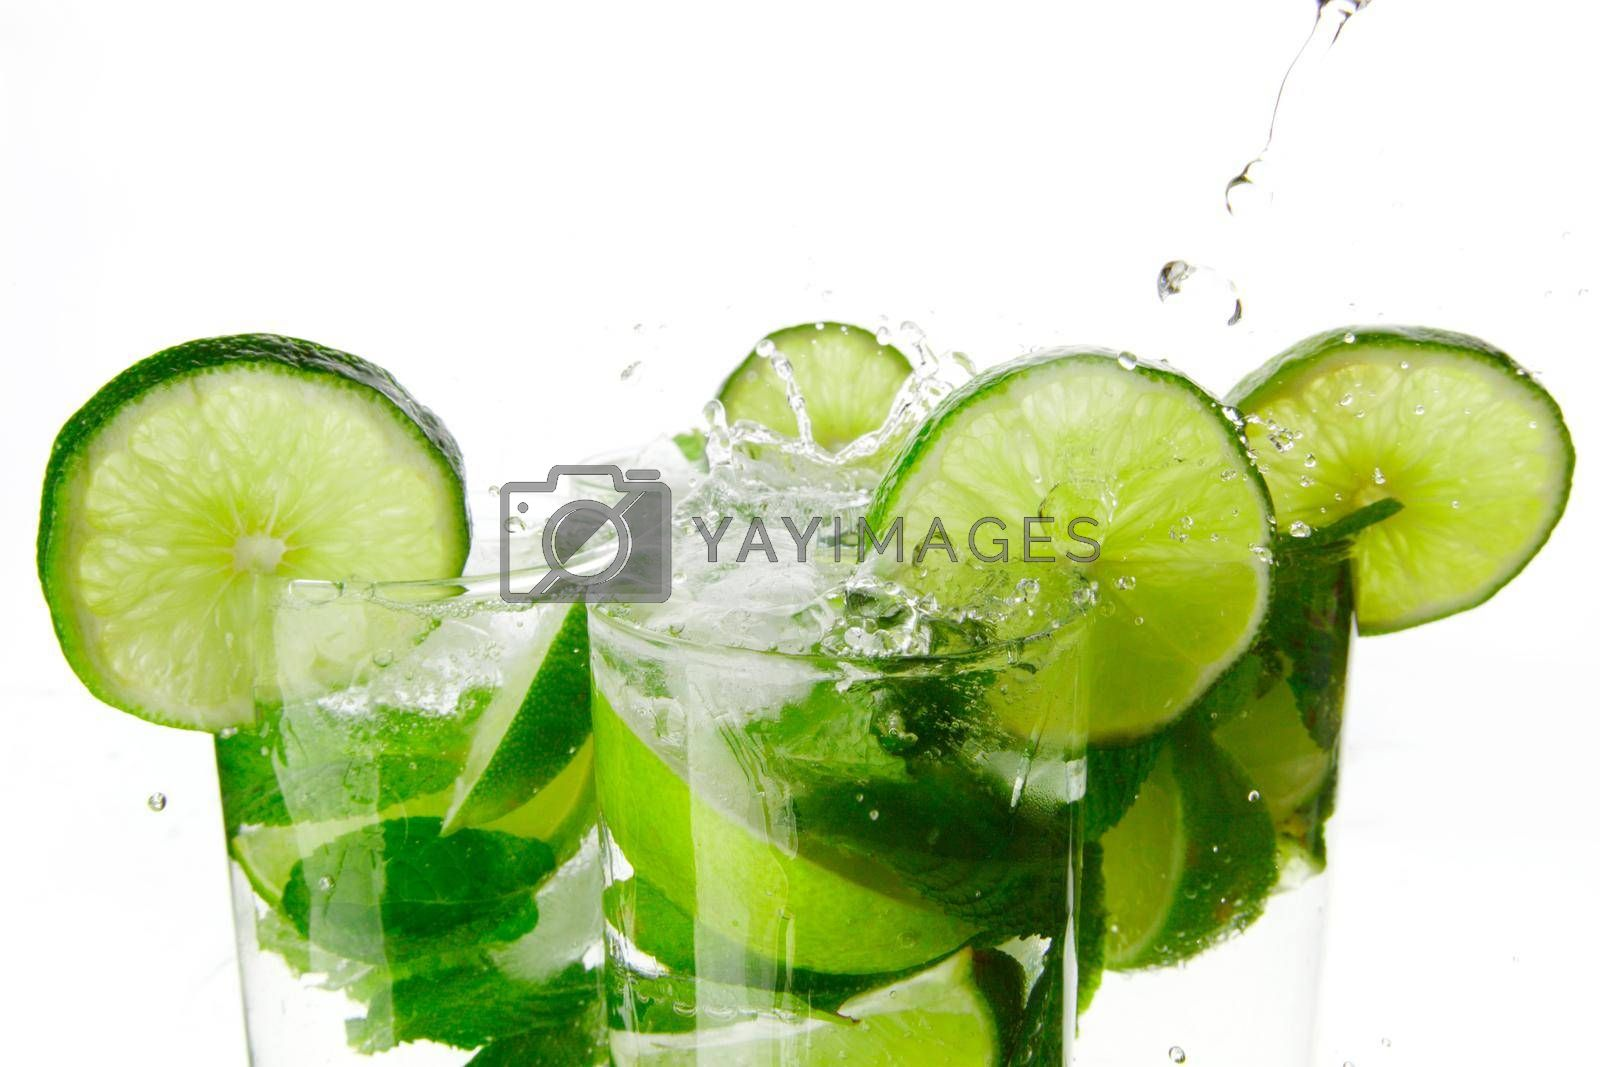 Royalty free image of Making mojito cocktails by Yellowj